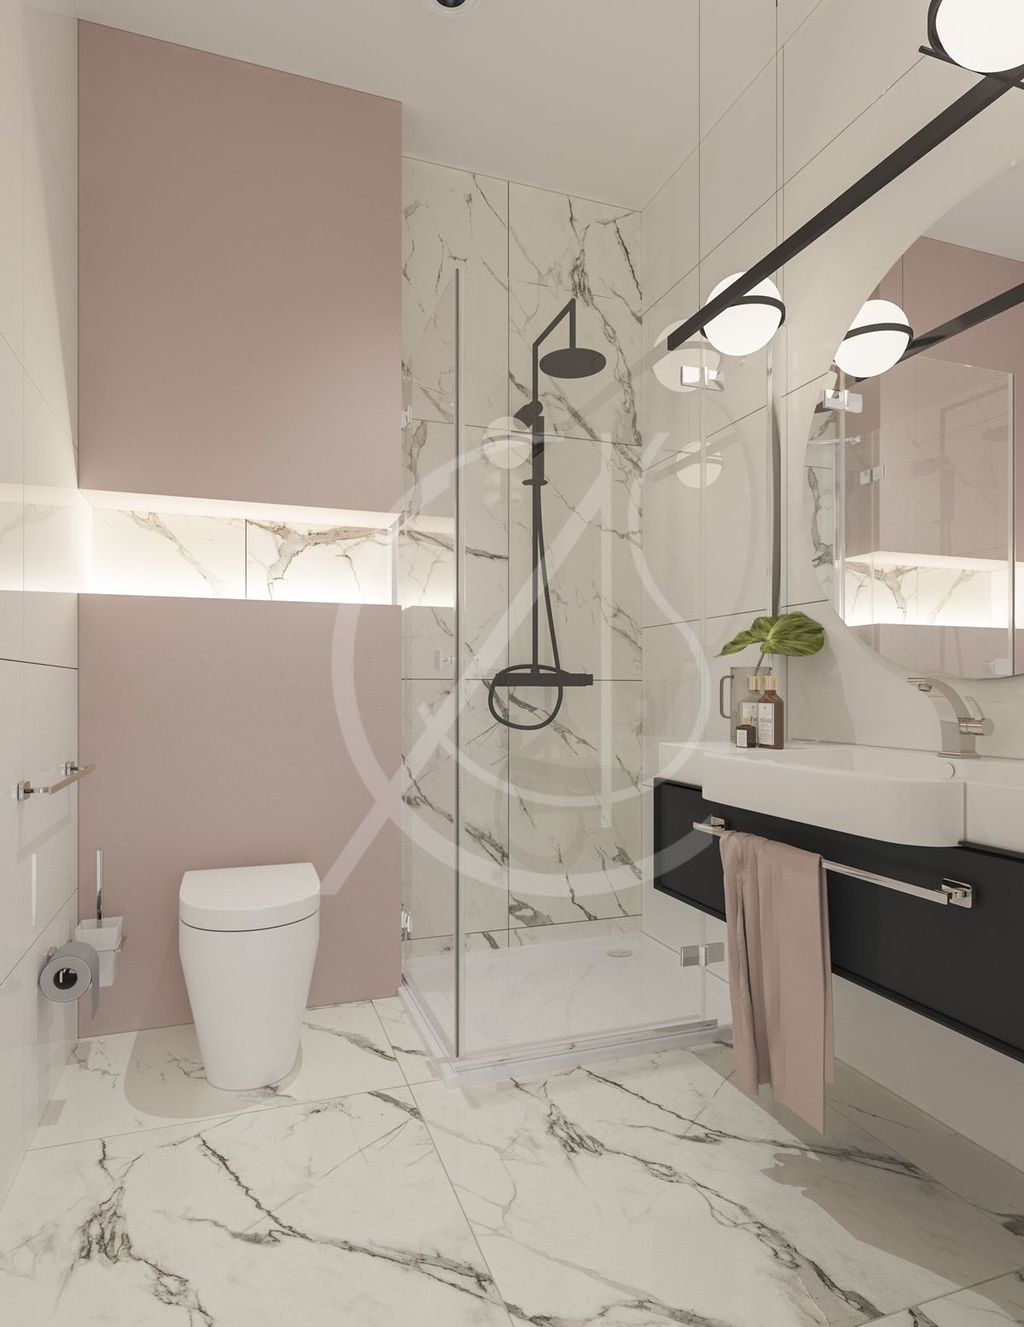 Affordable Marble Tiles Design Ideas In The Wooden Floor33